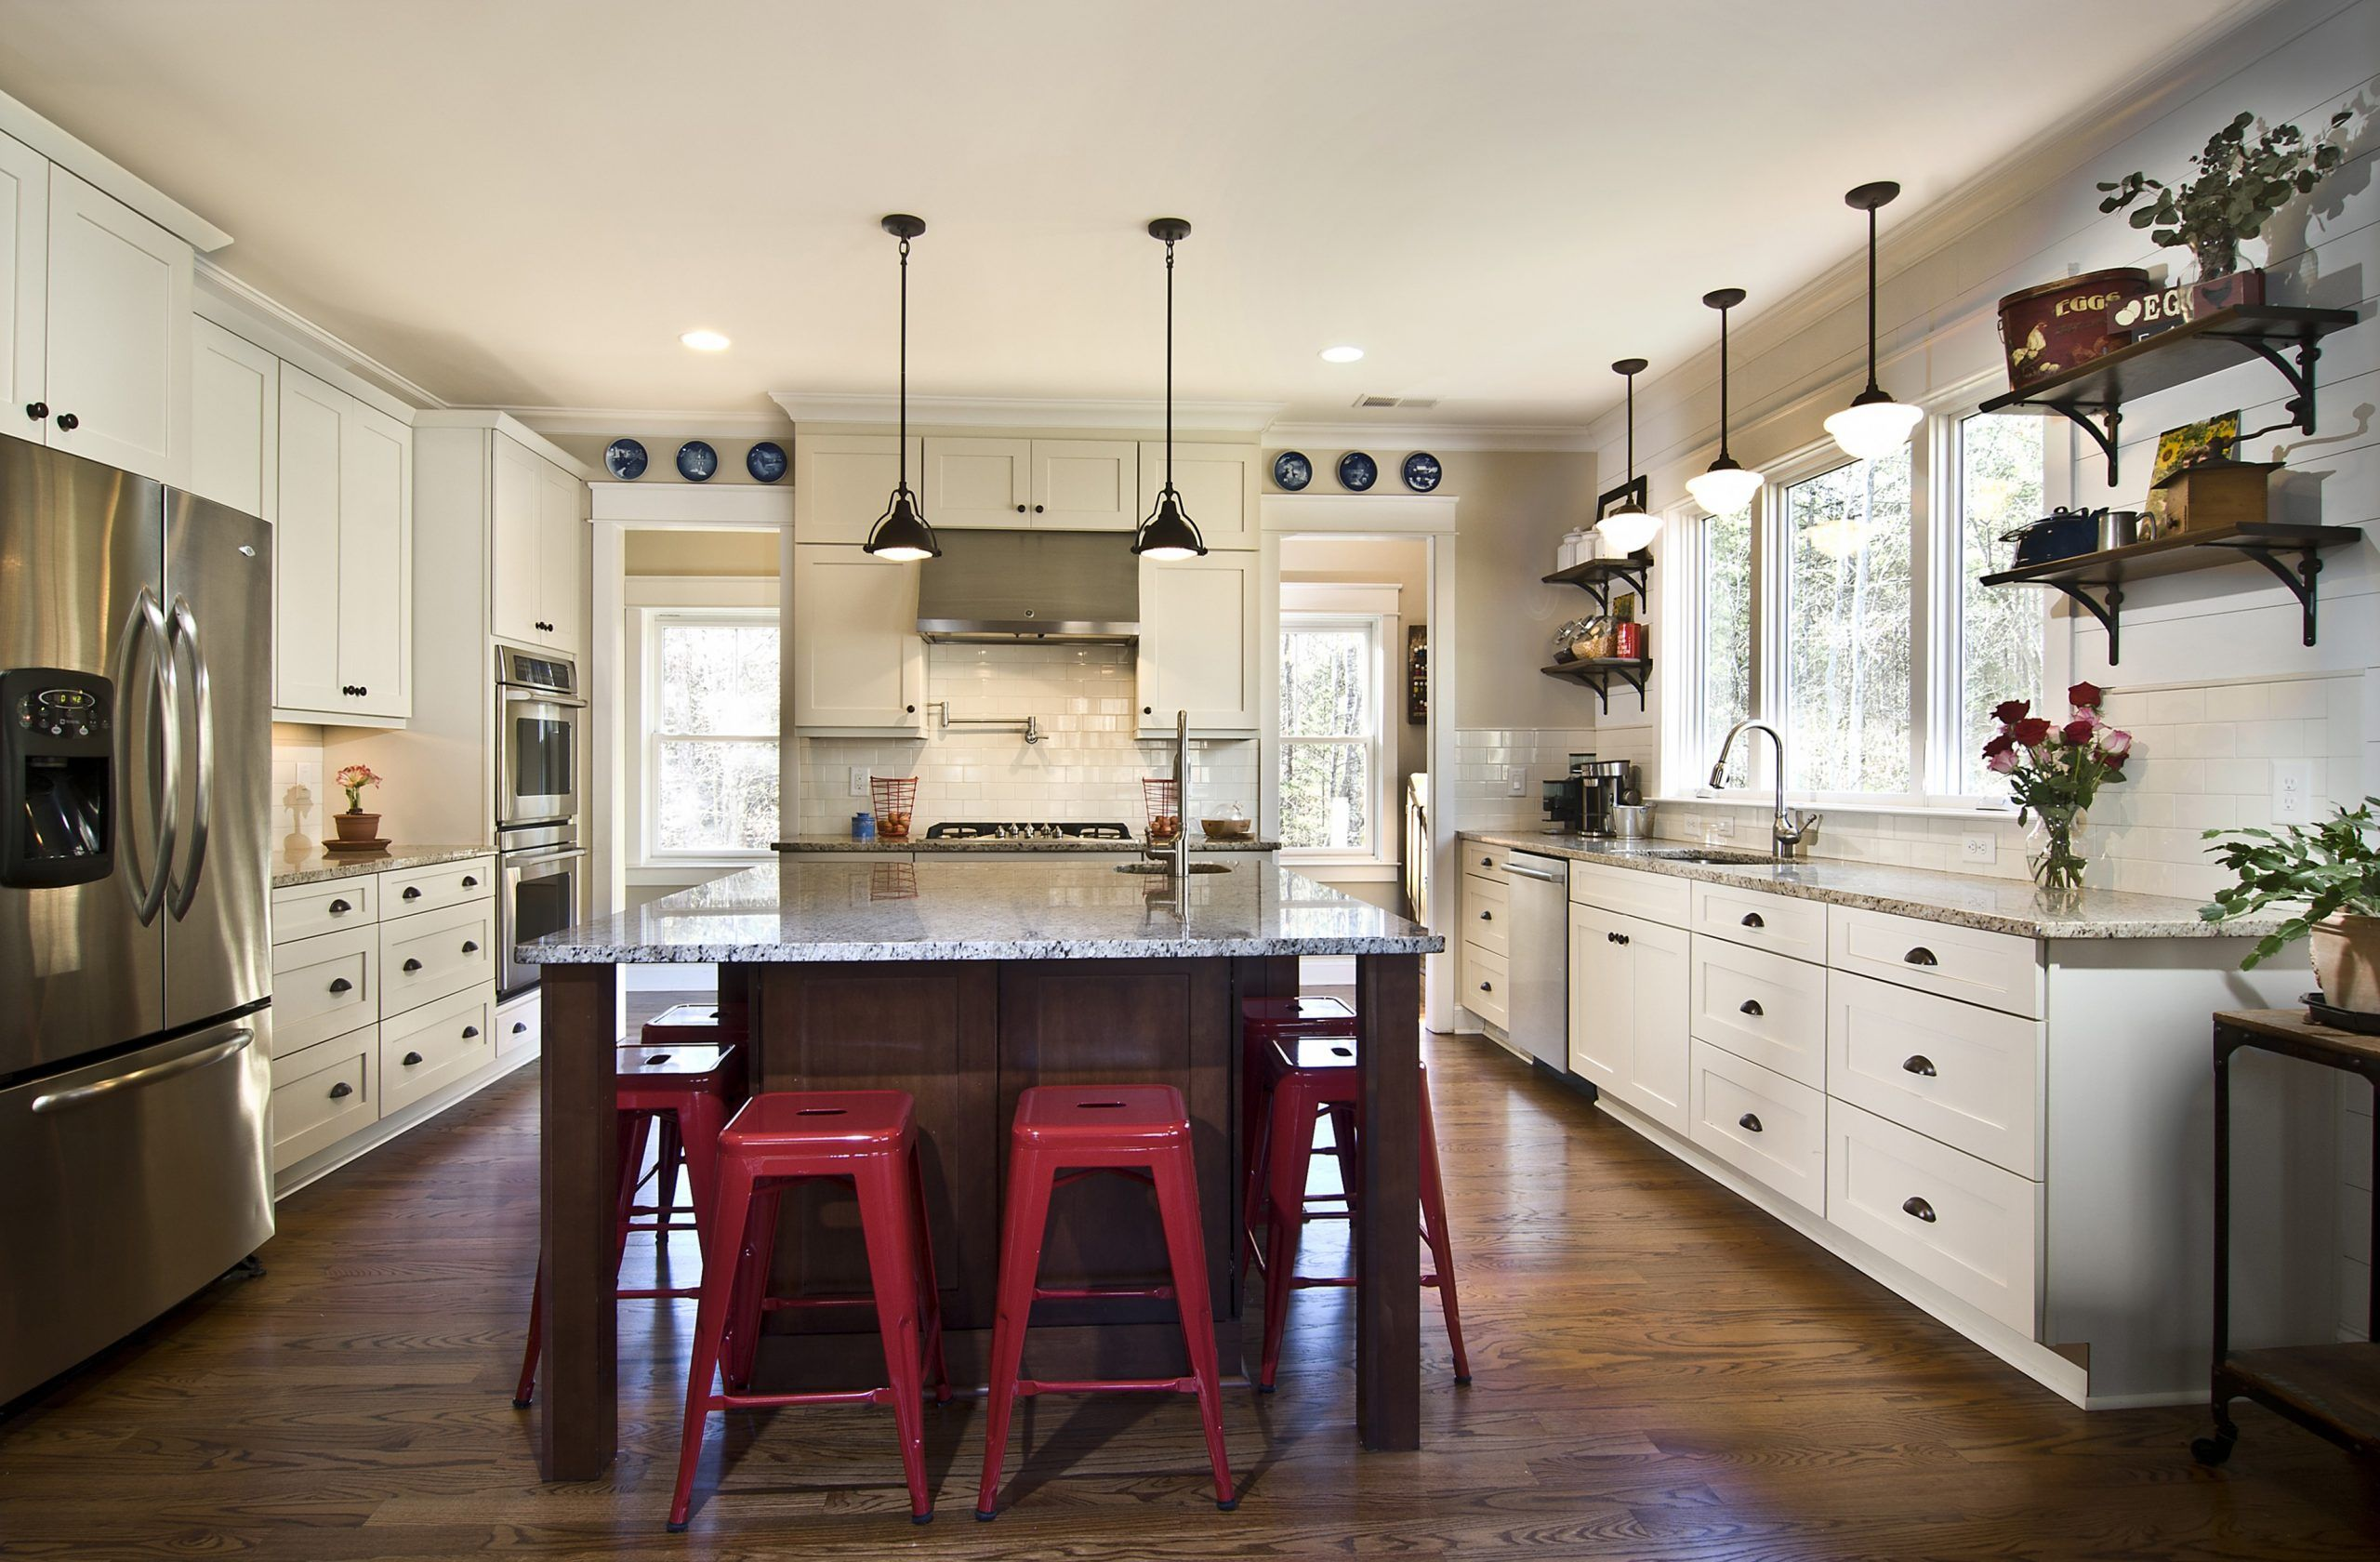 Kitchen Remodel Melbourne Fl in 2020 (With images ...